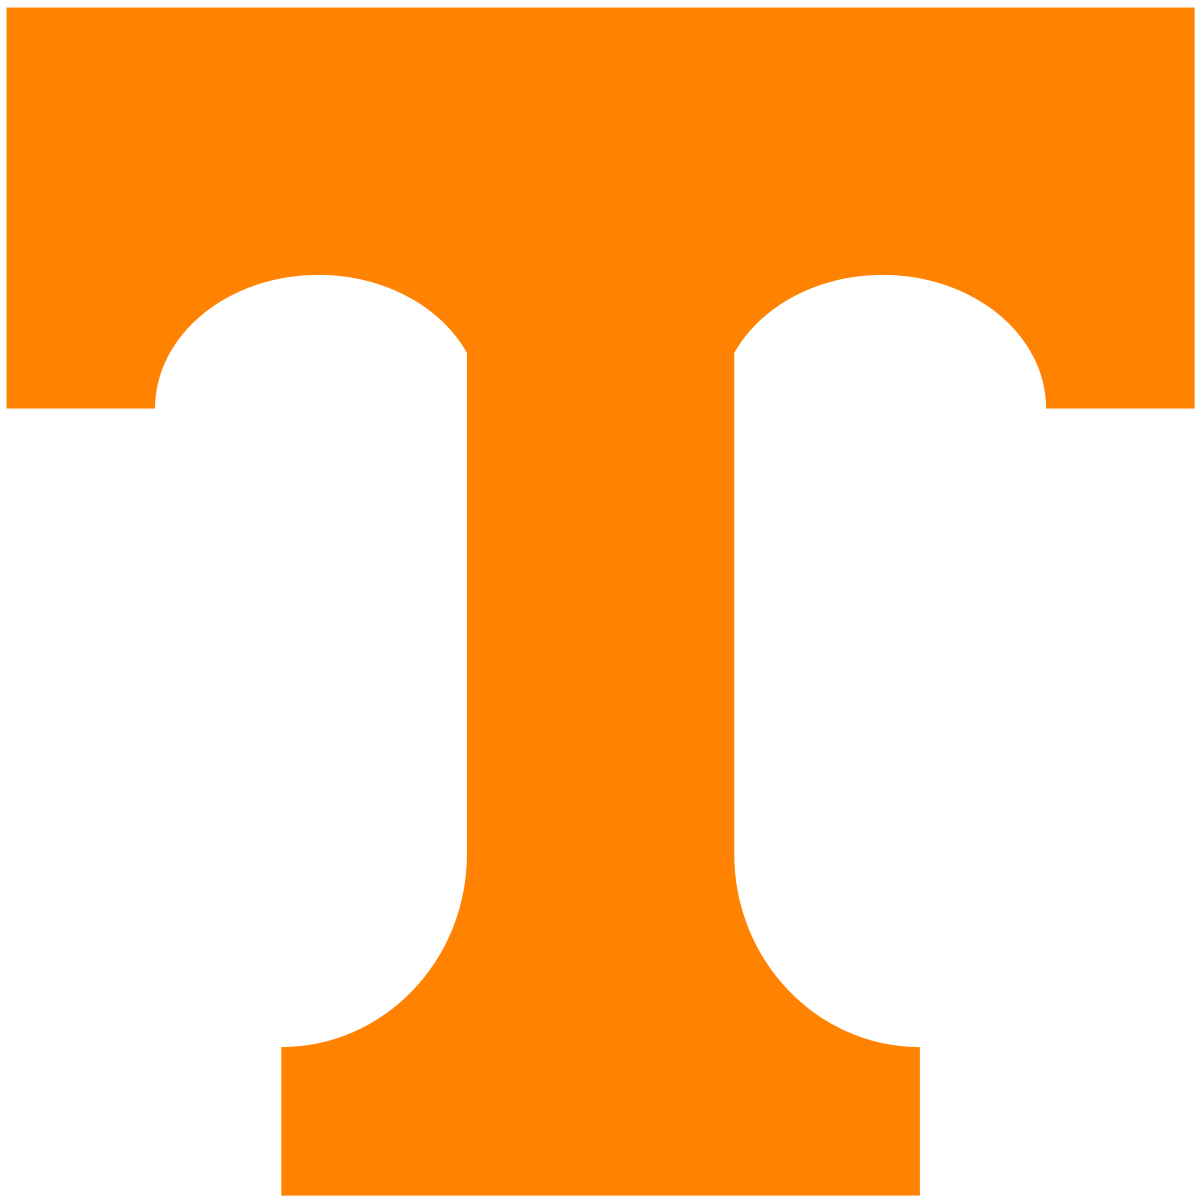 png library Tennessee volunteers wikipedia . Volunteering clipart college.